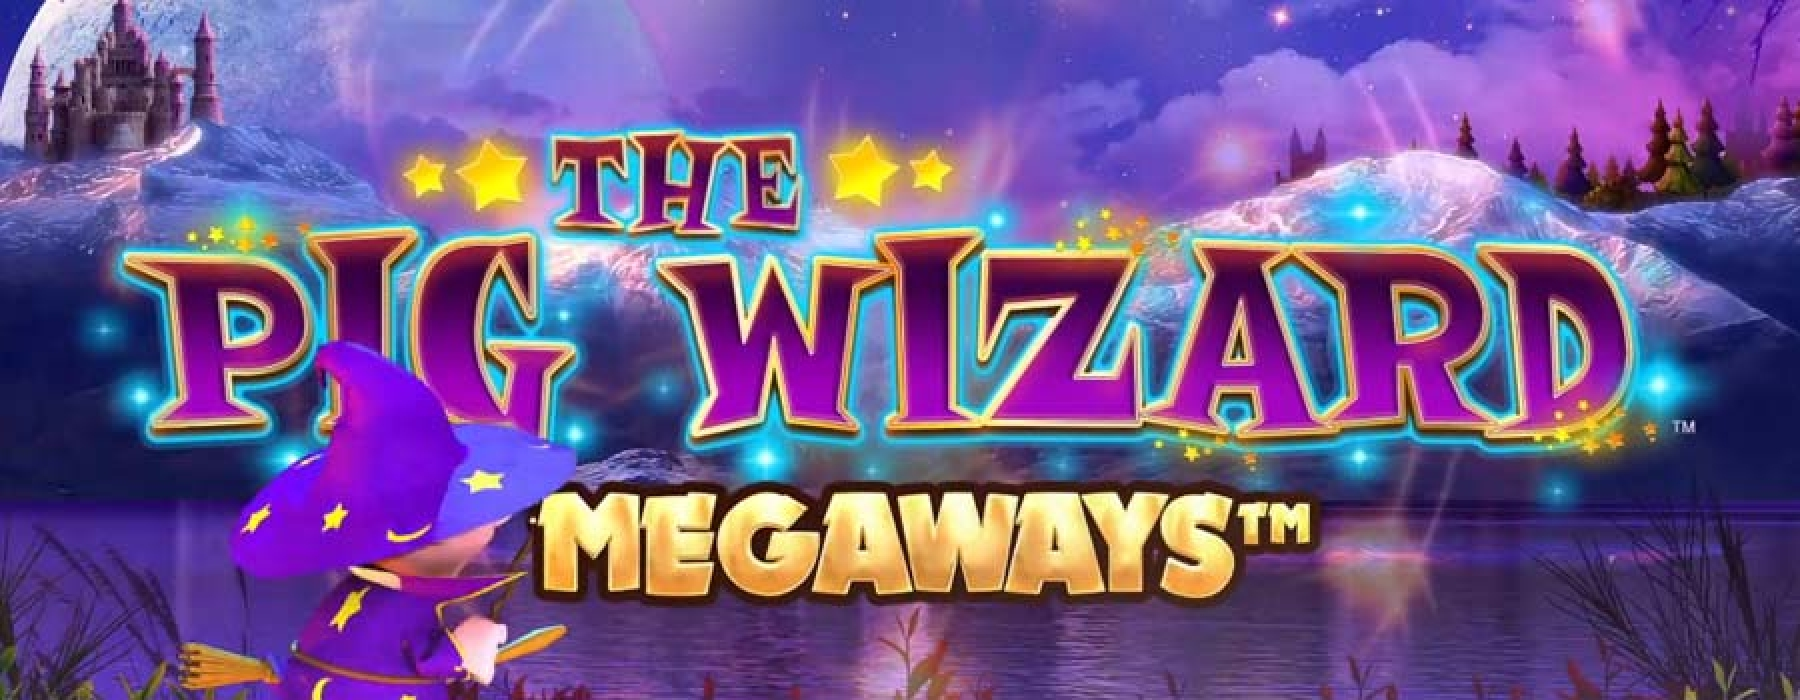 The Pig Wizard Megaways Online Slot Demo Game by Blueprint Gaming